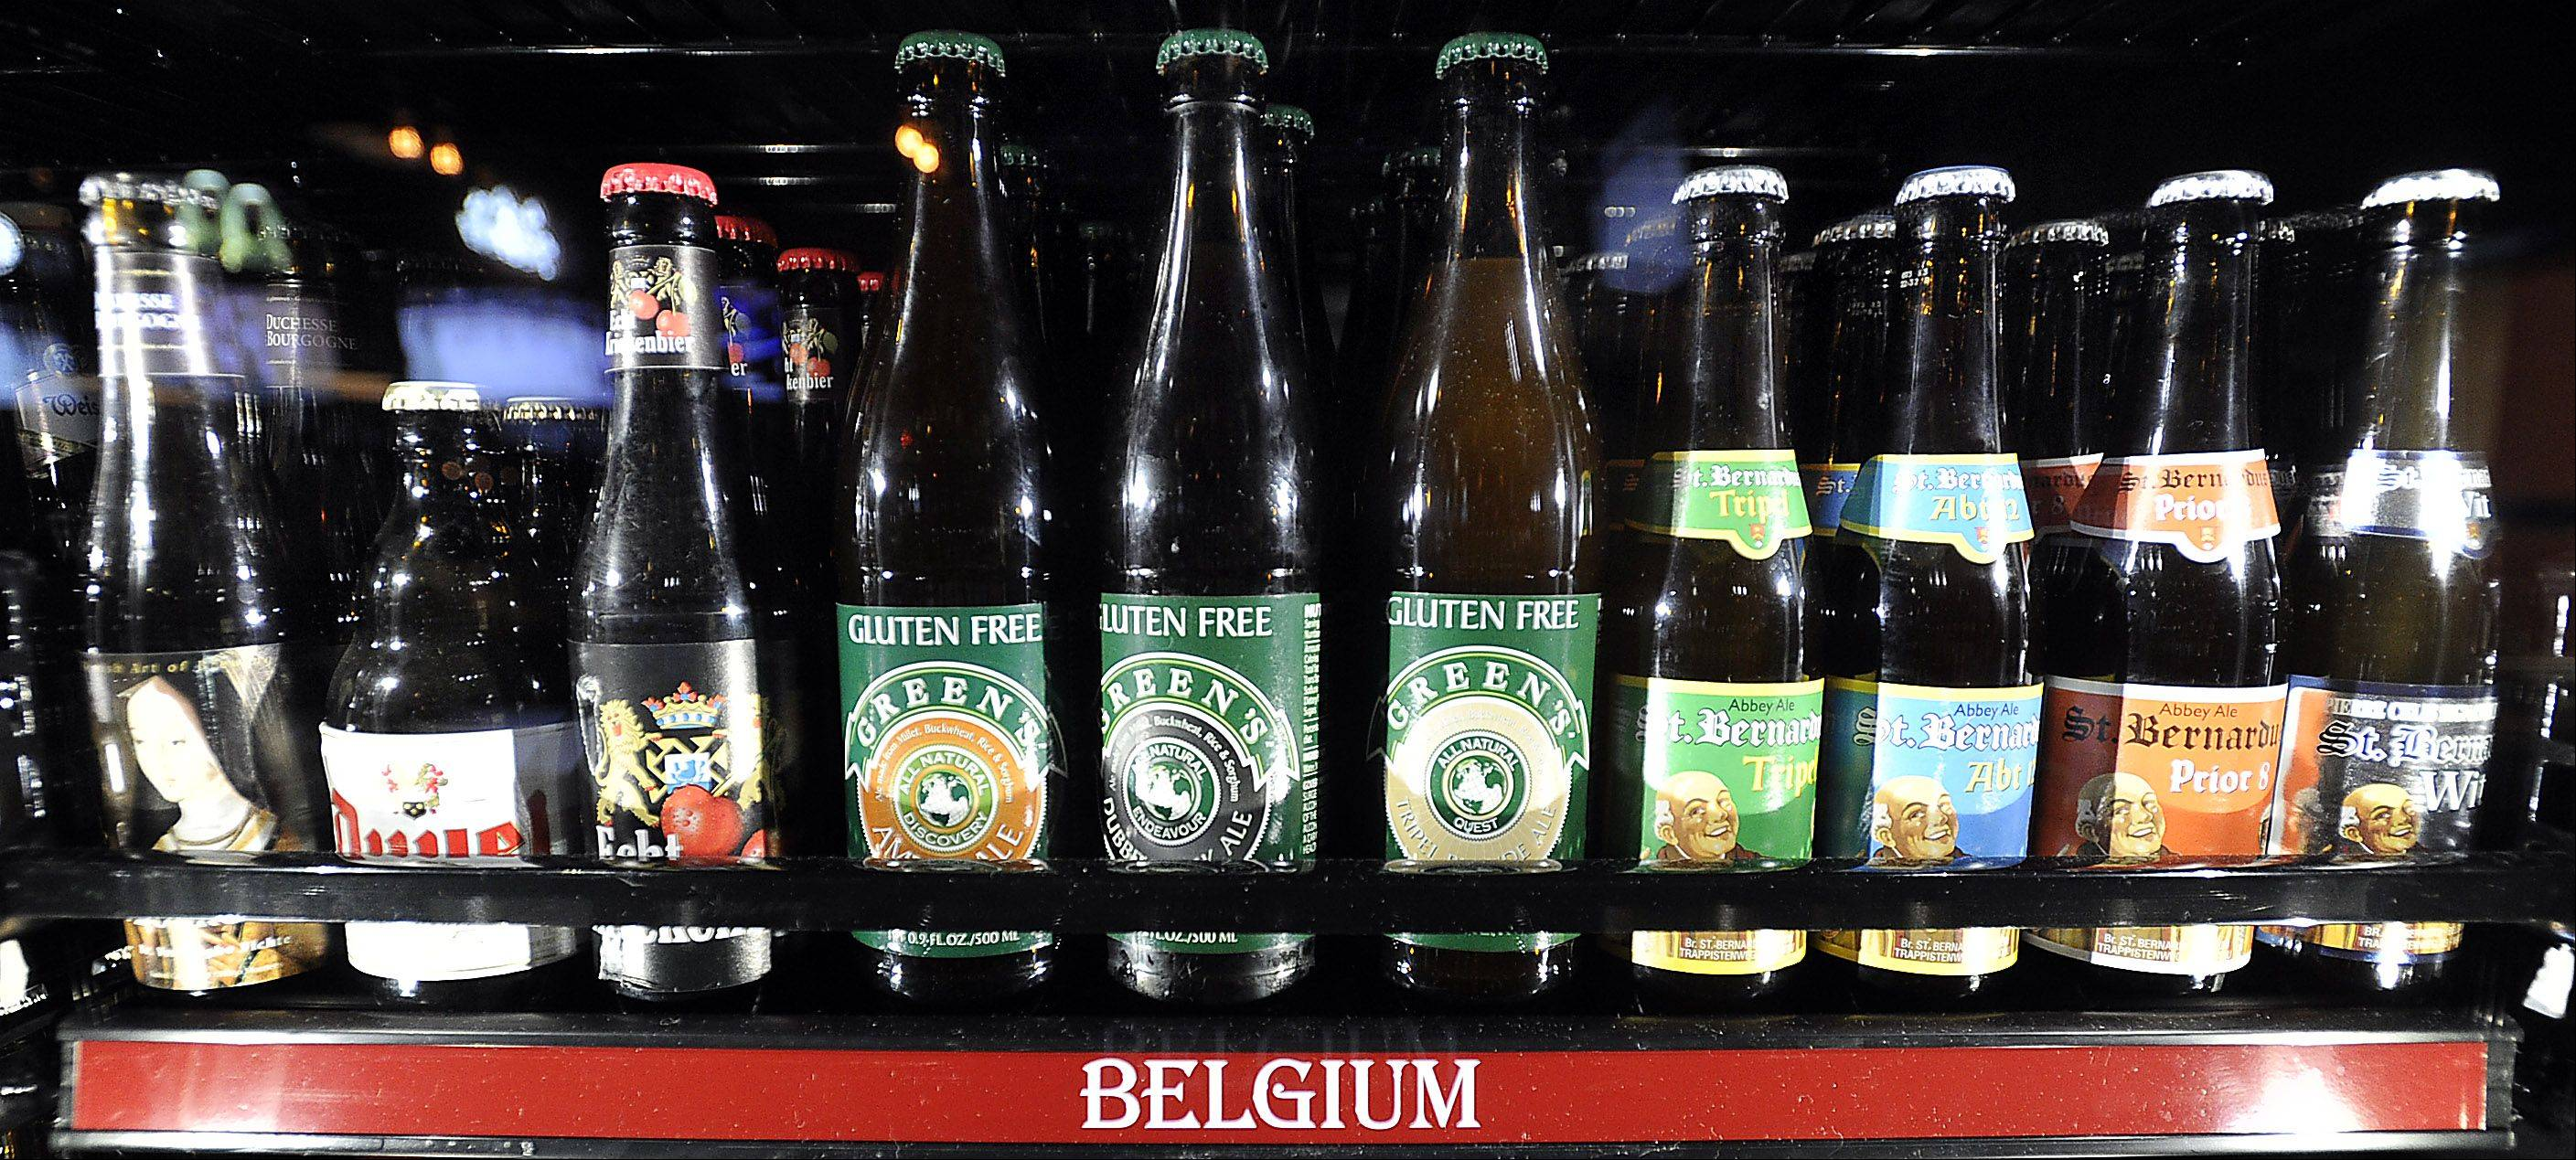 The Beer Market in Schaumburg features beer from all over the world.